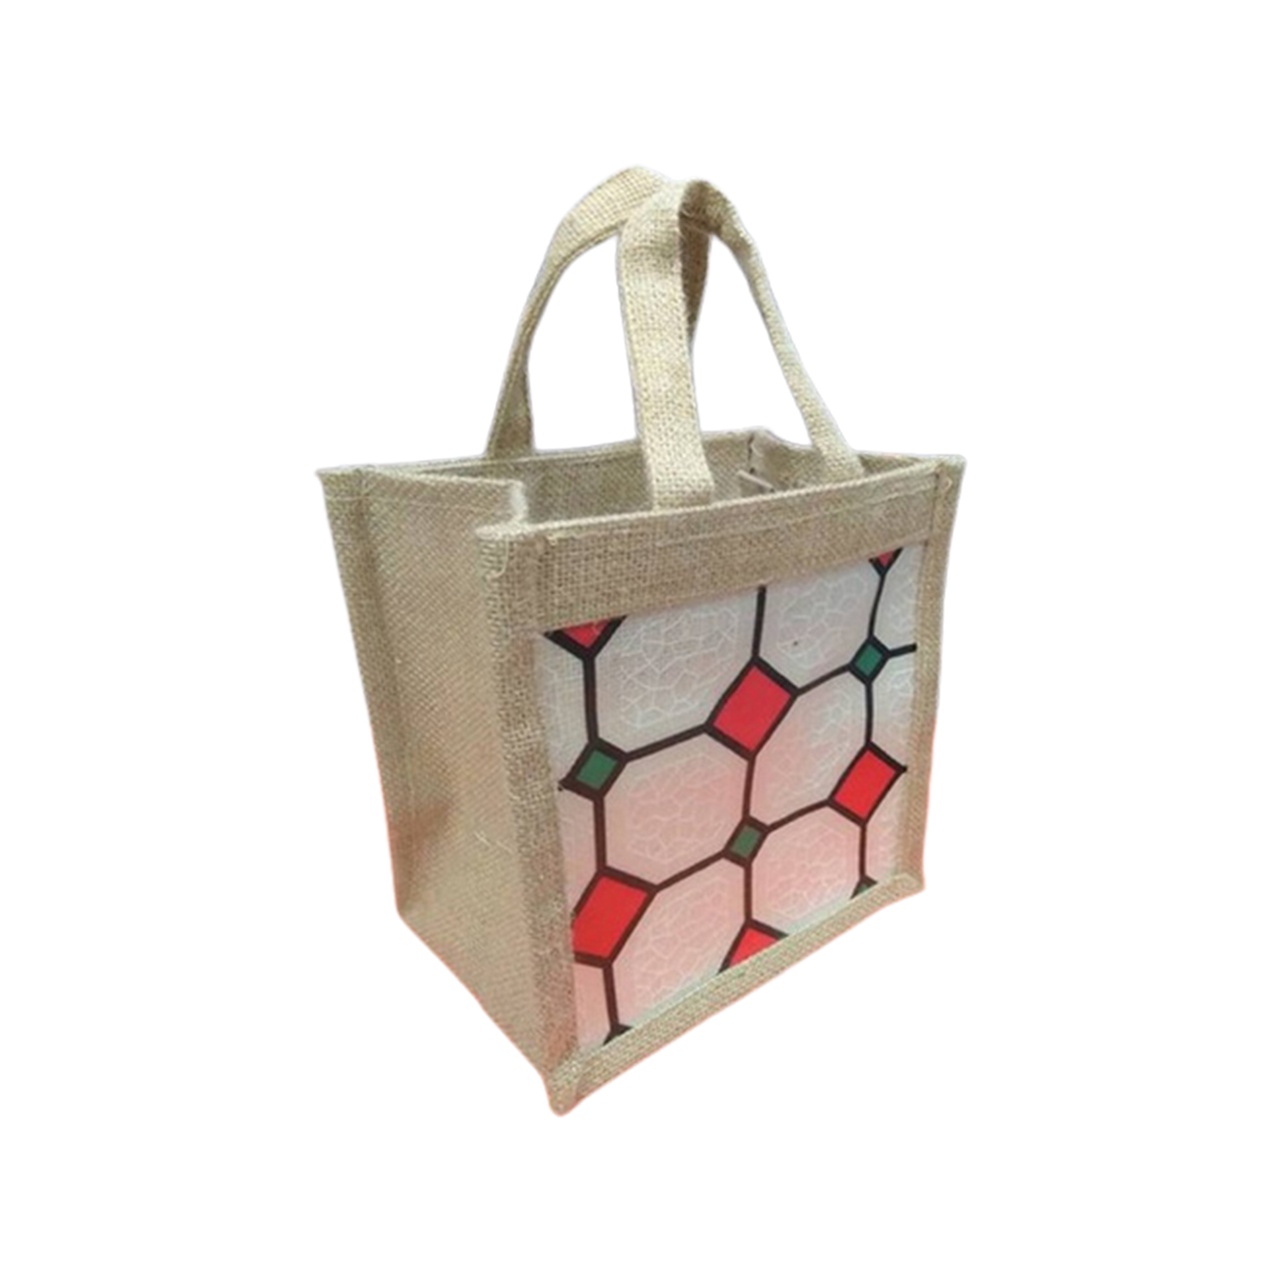 Jute bag for lunch carrying With Sticker laminated